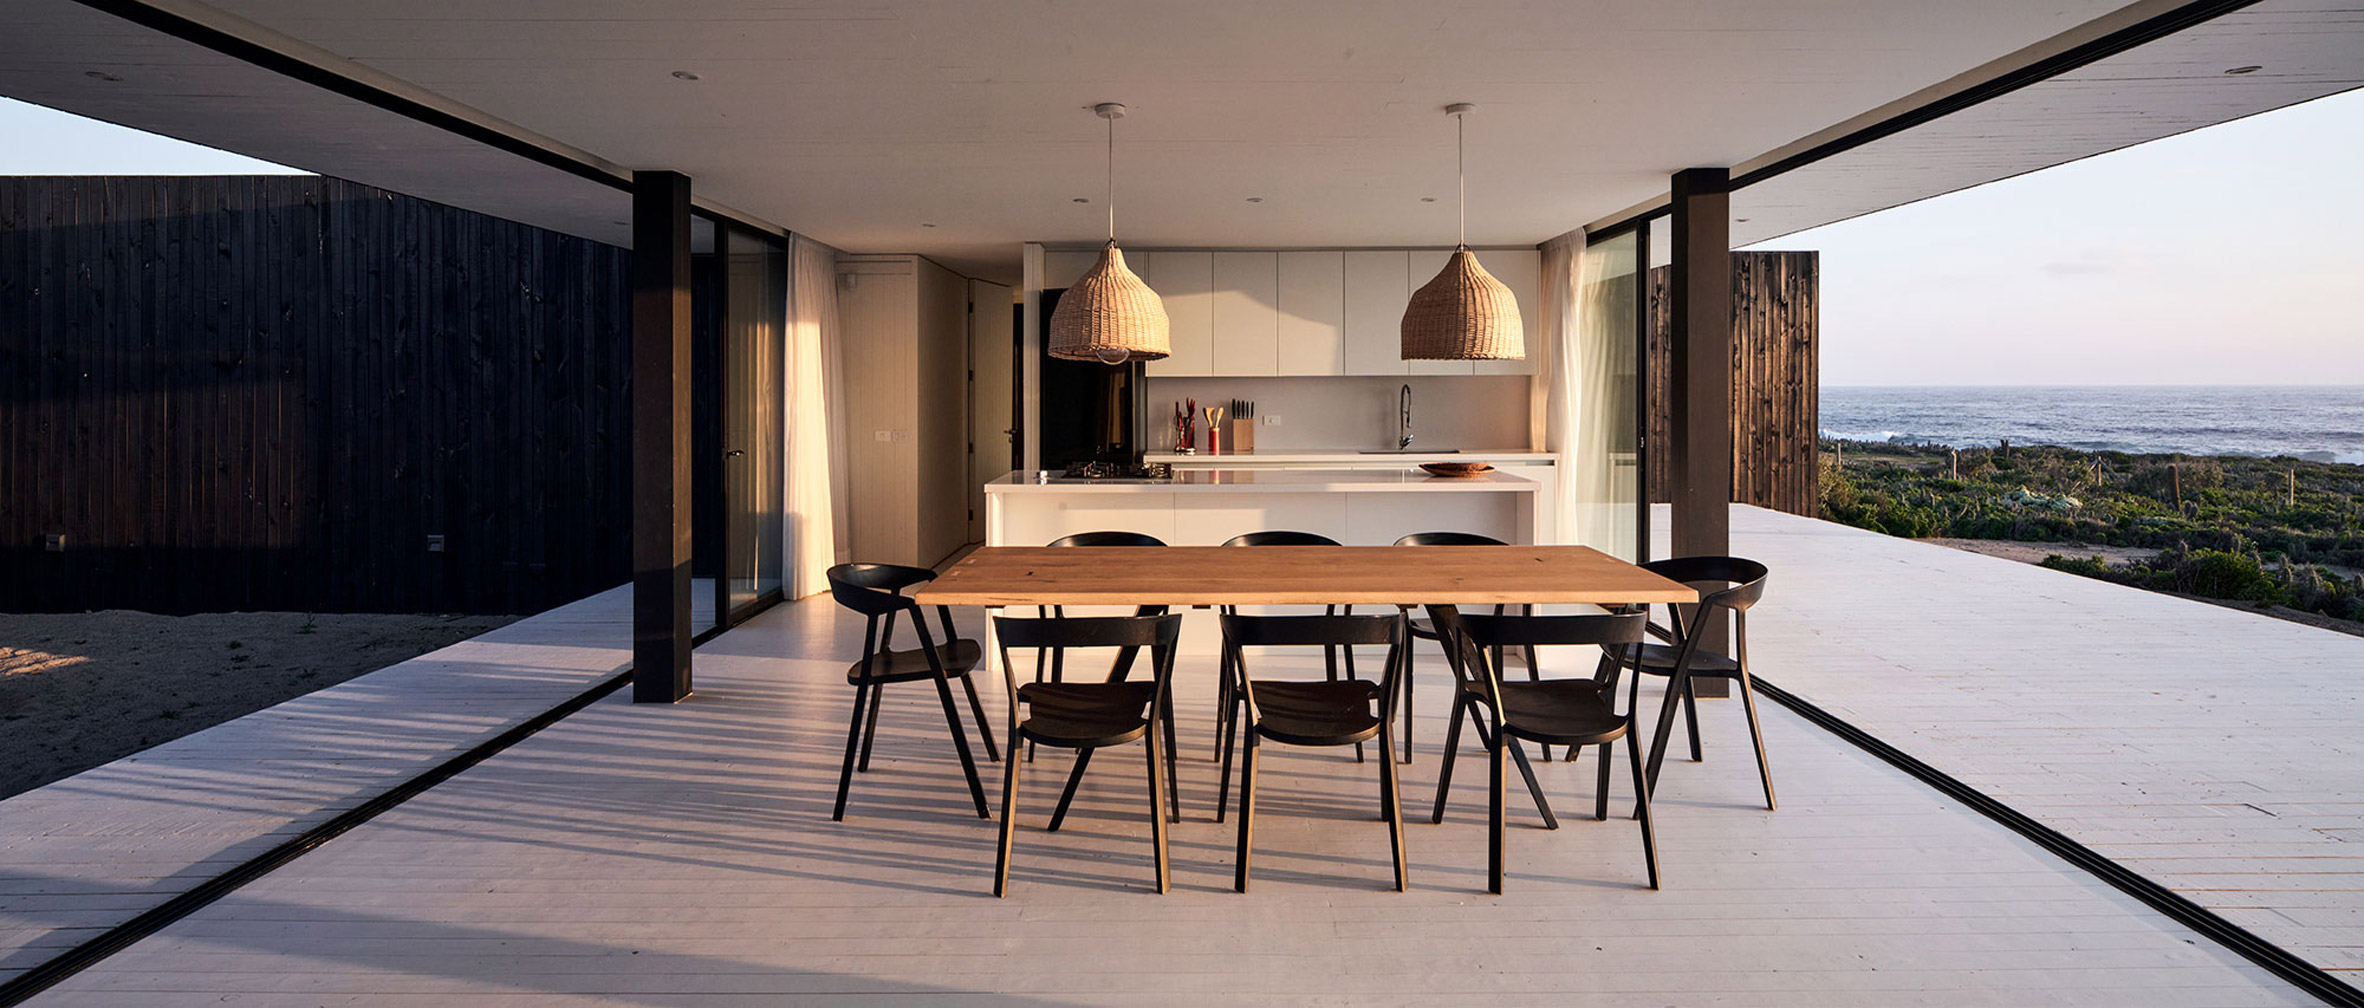 Kitchen diner of seaside house in Chile